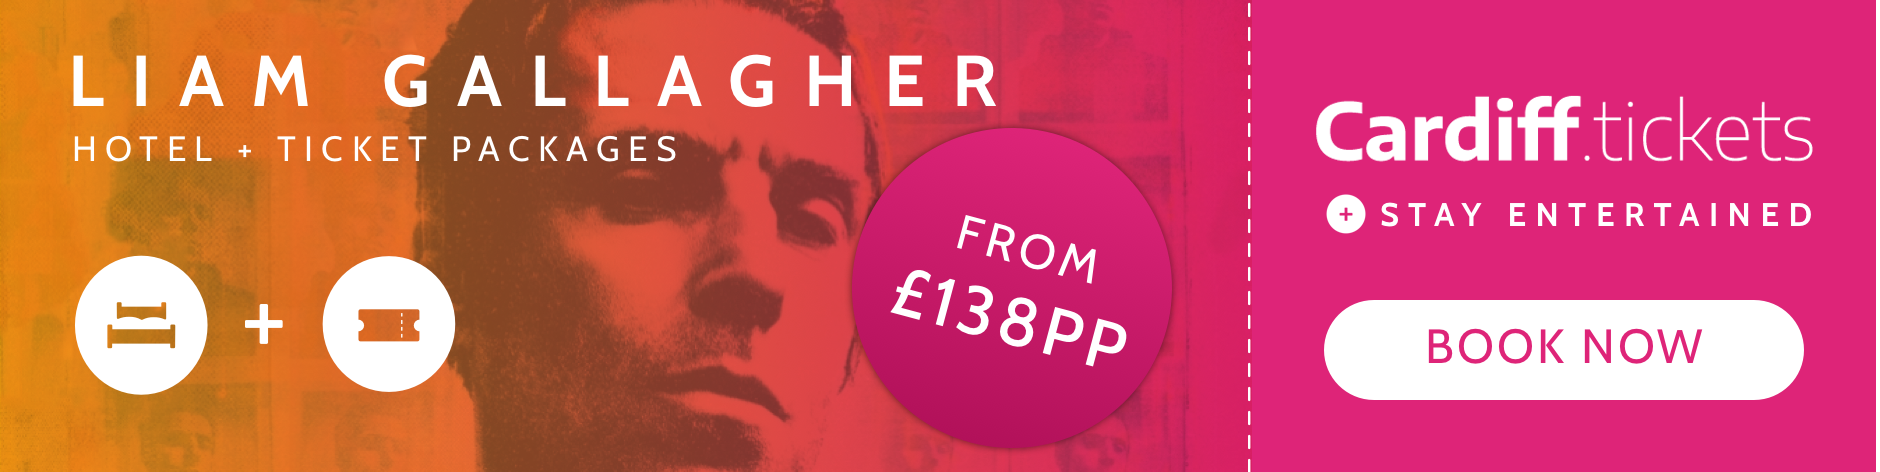 Liam Gallagher tickets and hotel package